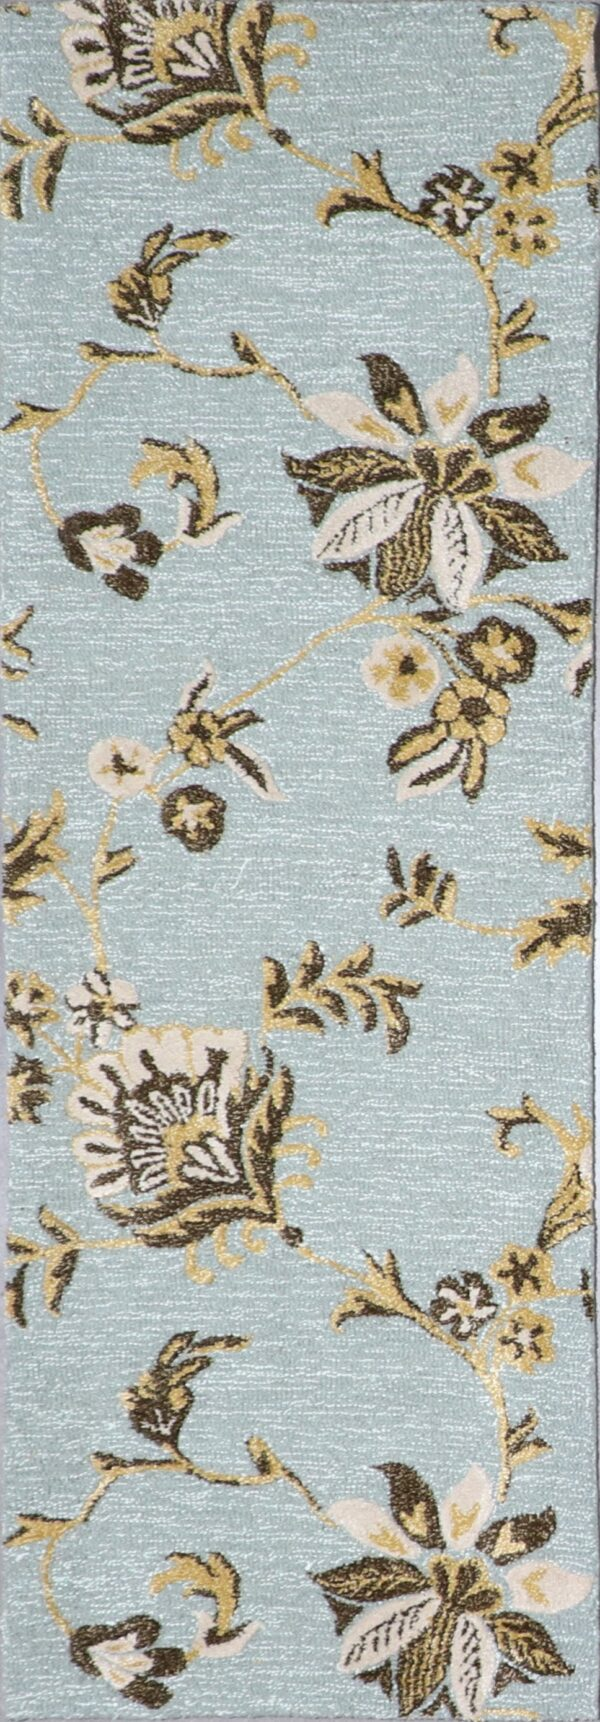 """2'6""""x7' Contemporary Wool Hand-Tufted Rug - Direct Rug Import 